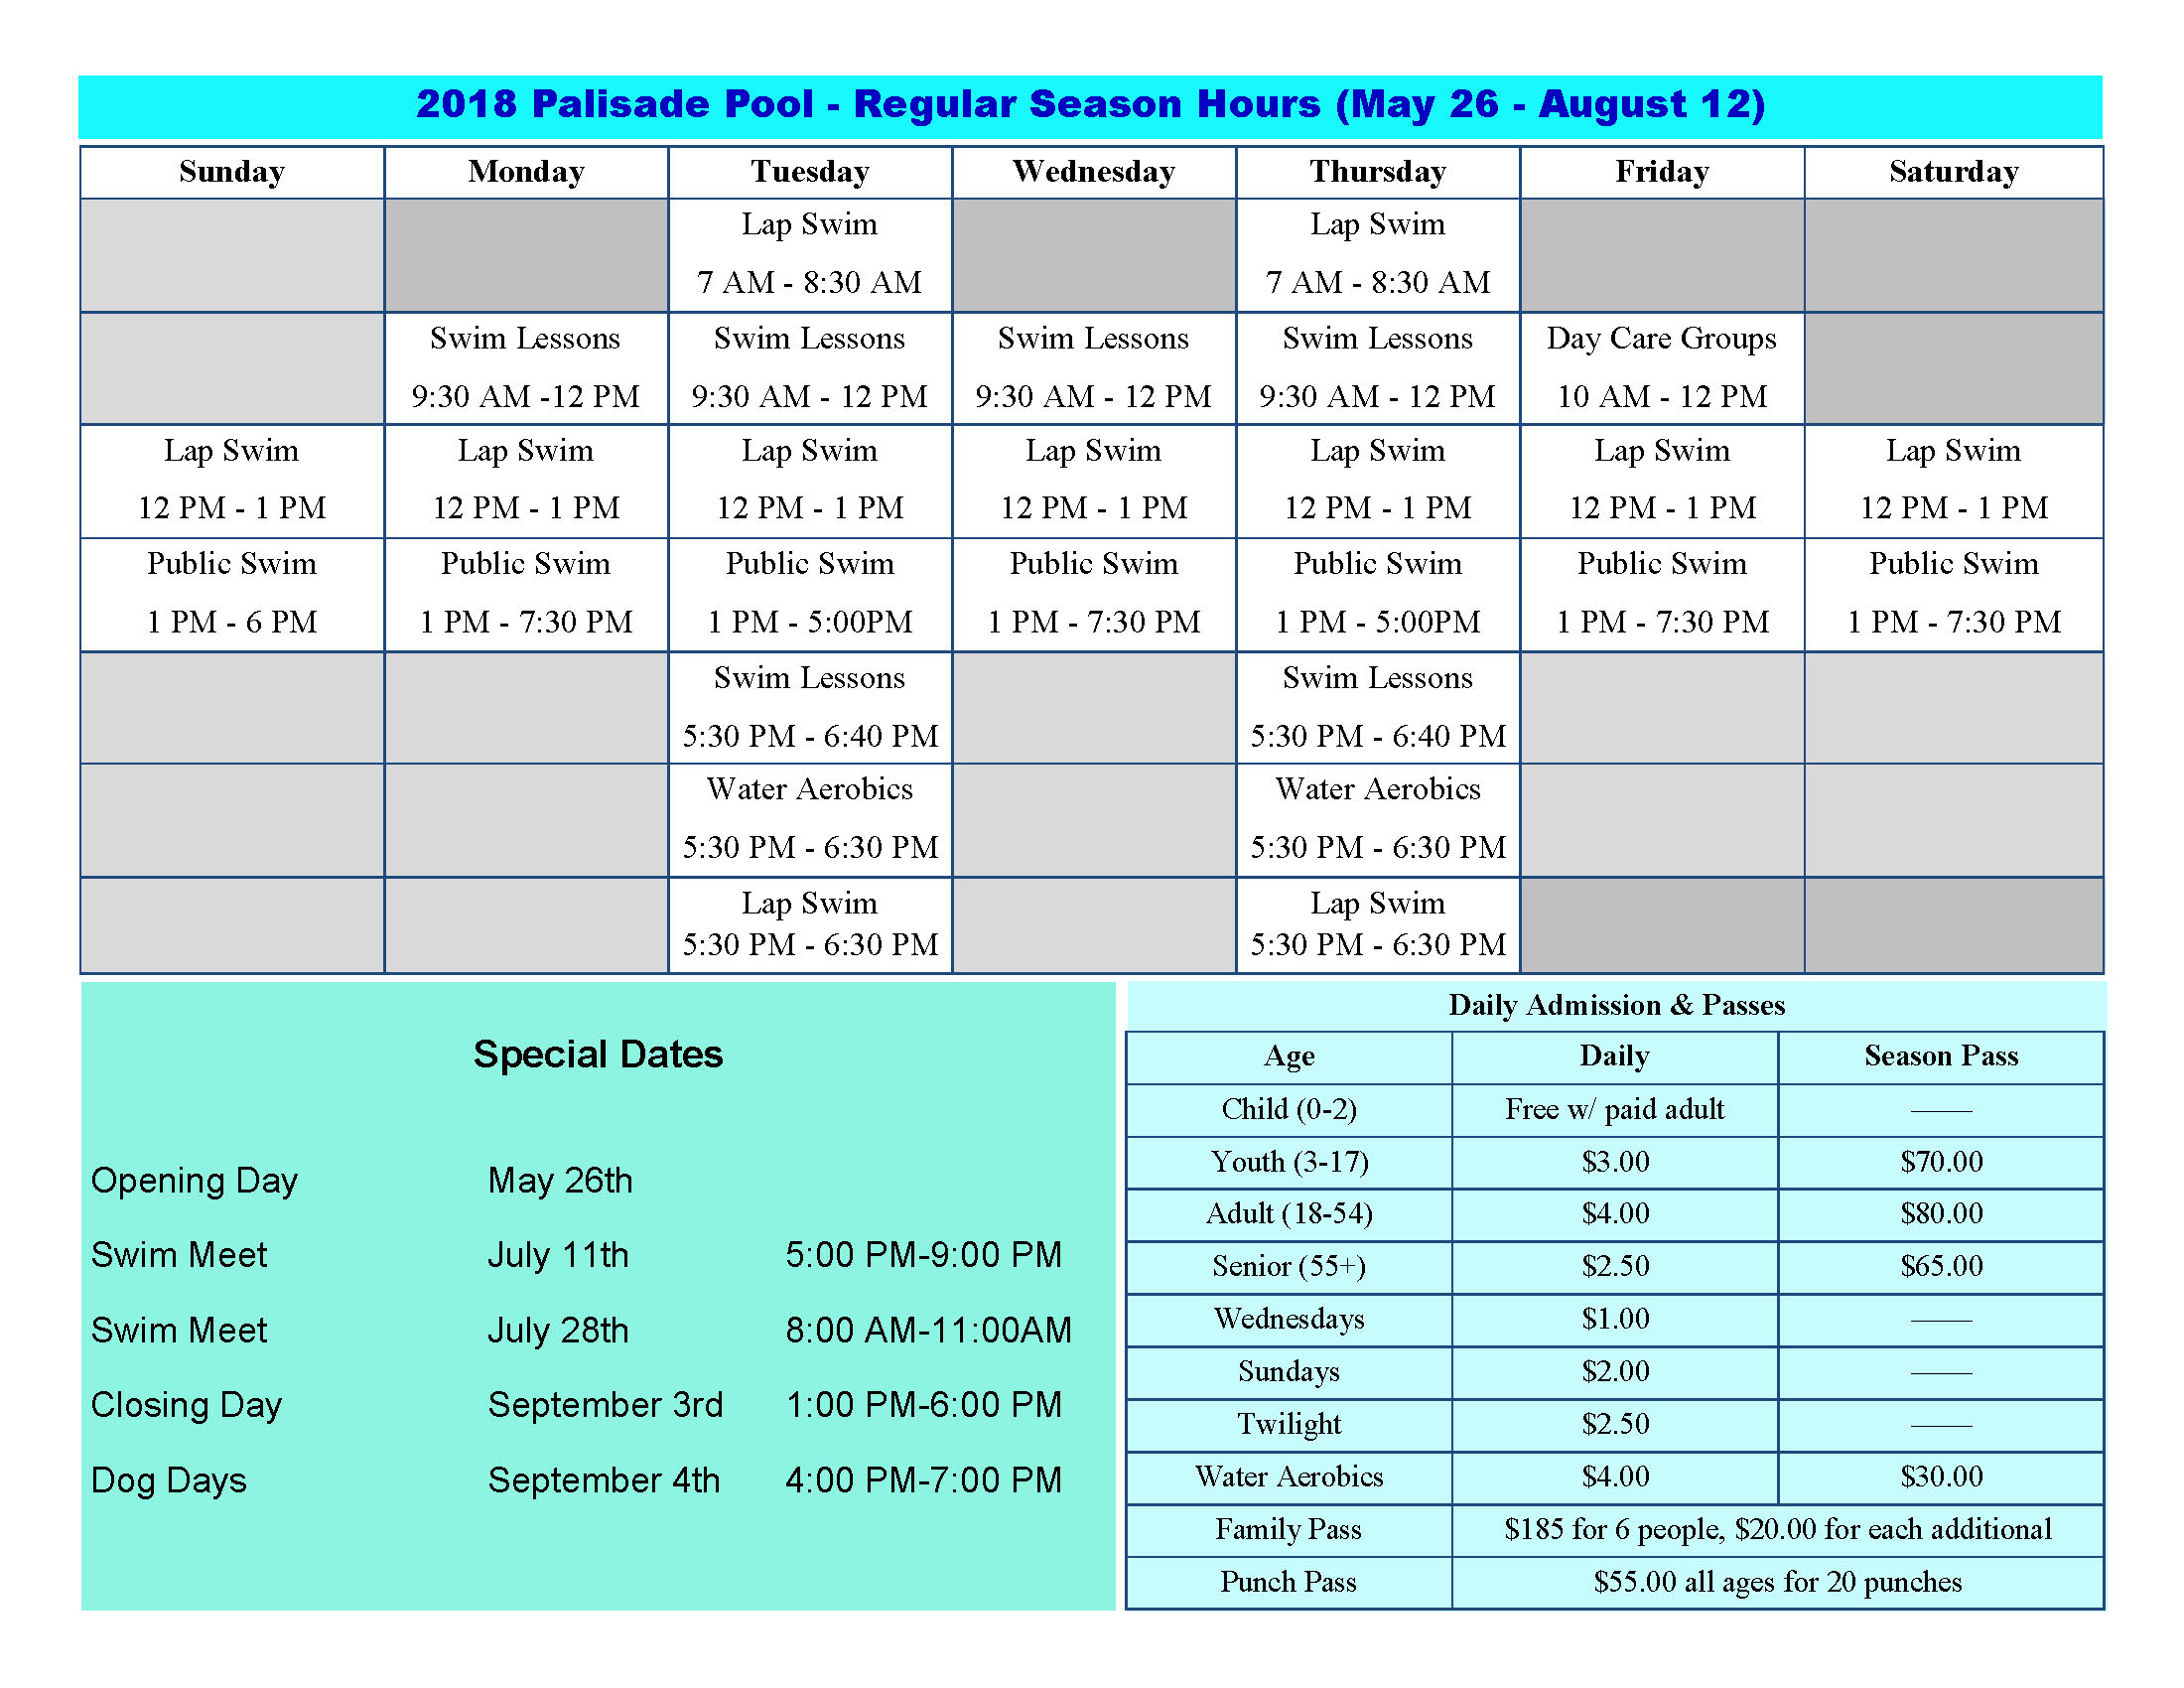 2018 pool schedule Page 1